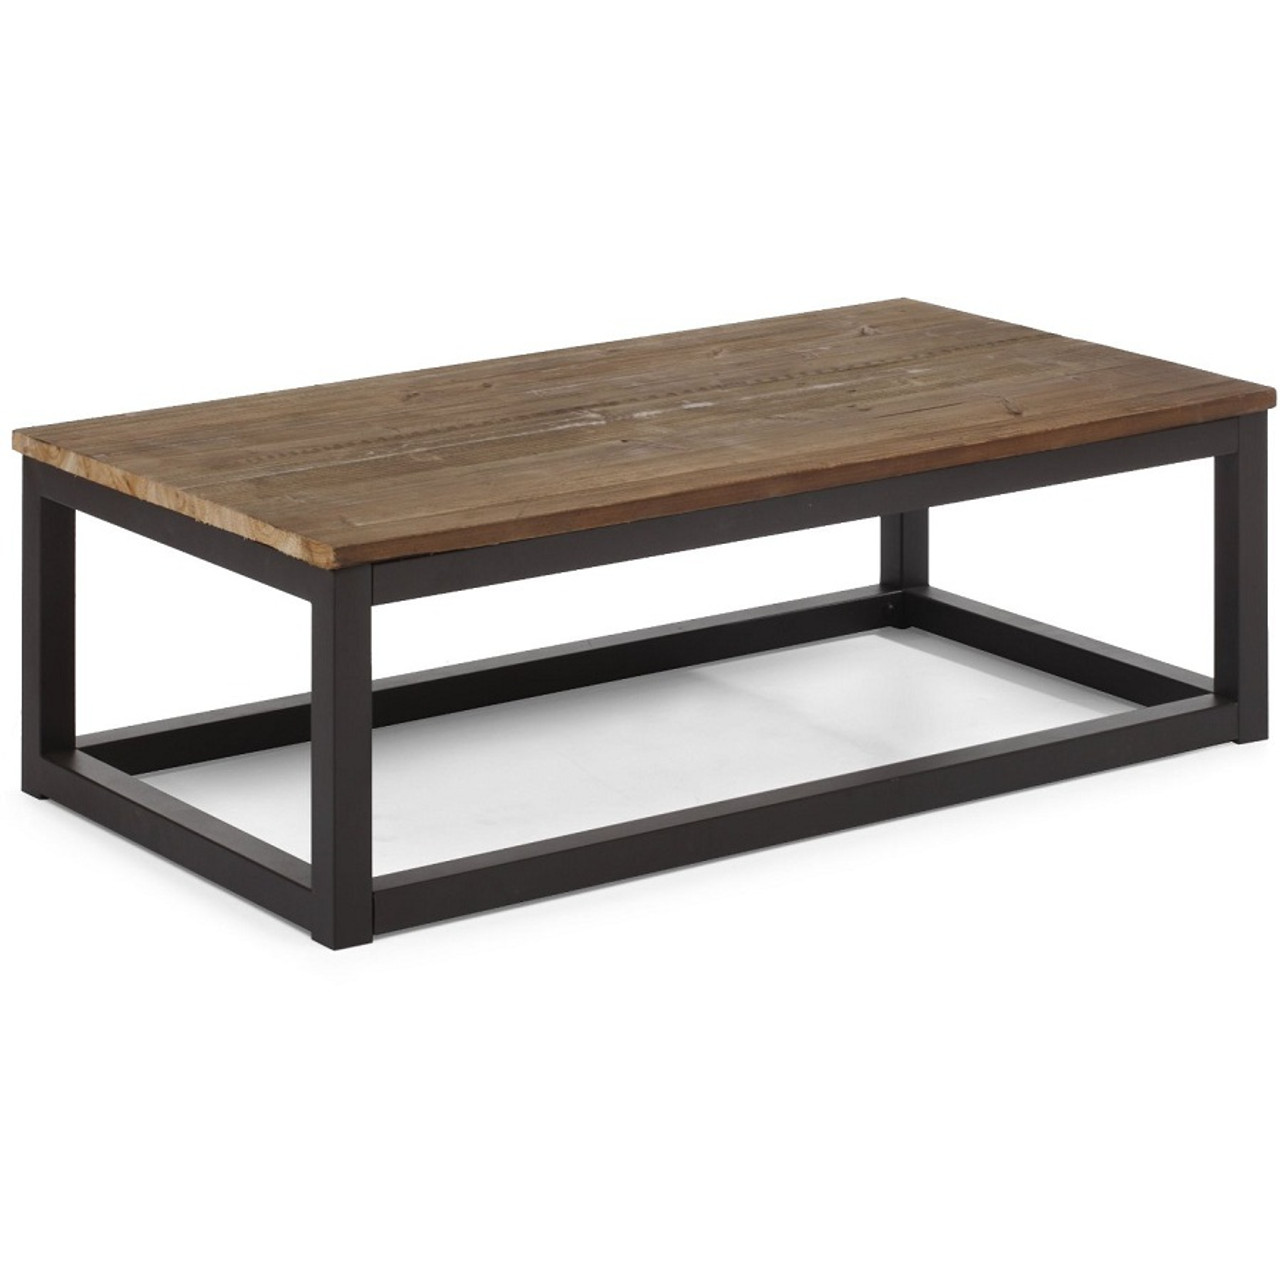 civic wood and metal coffee table 43 zin home. Black Bedroom Furniture Sets. Home Design Ideas